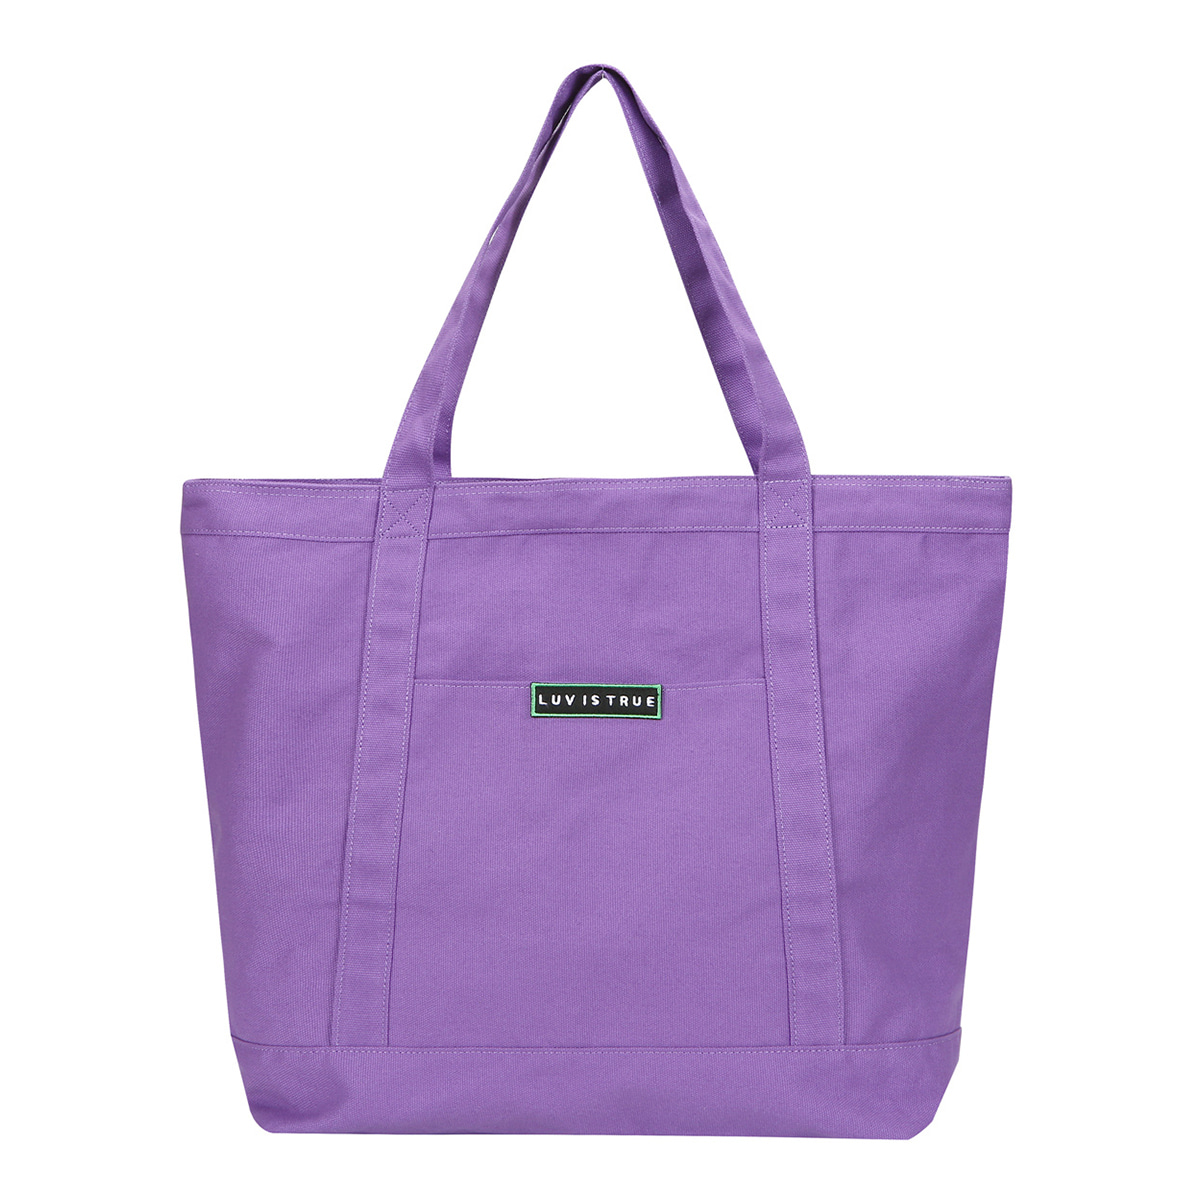 (UNISEX)BG LOGO TOTE BAG(PURPLE)